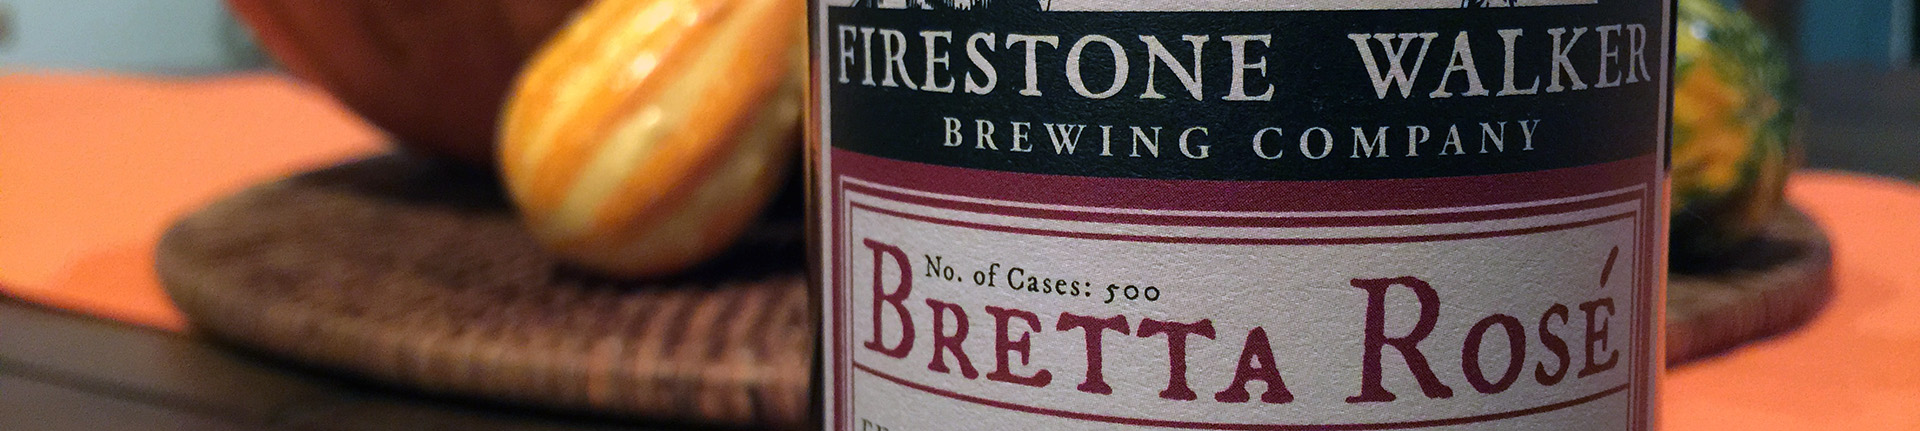 Firestone Walker Bretta Rose Header